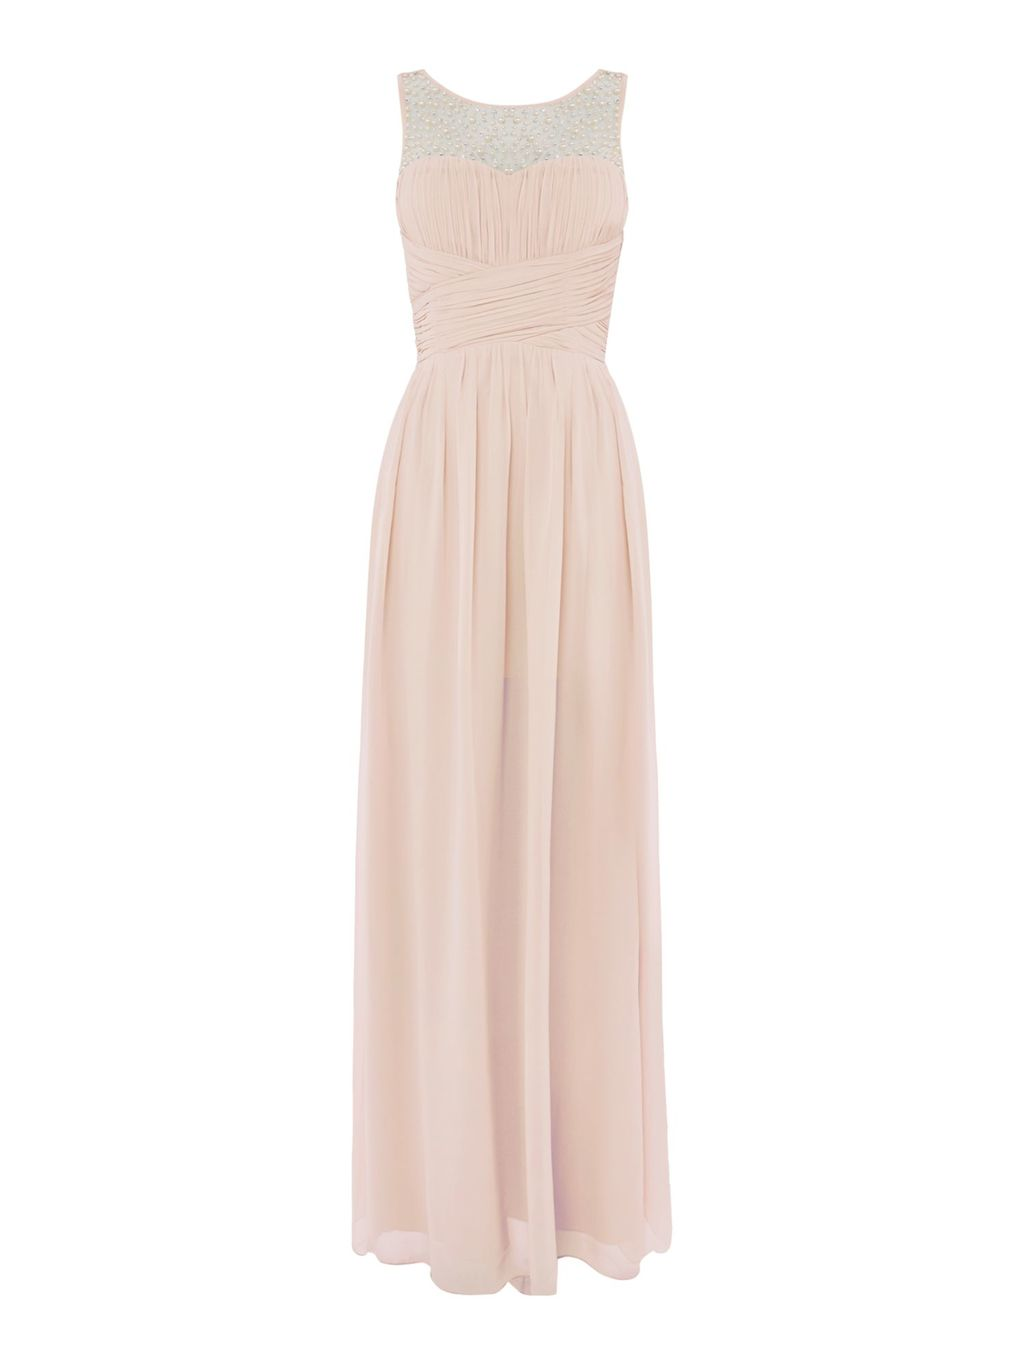 Embellished Sleeveless Pleat Detail Maxi Dress, Nude - neckline: round neck; fit: fitted at waist; pattern: plain; style: maxi dress; predominant colour: blush; length: floor length; fibres: polyester/polyamide - 100%; occasions: occasion; sleeve length: short sleeve; sleeve style: standard; pattern type: fabric; texture group: other - light to midweight; season: s/s 2016; wardrobe: event